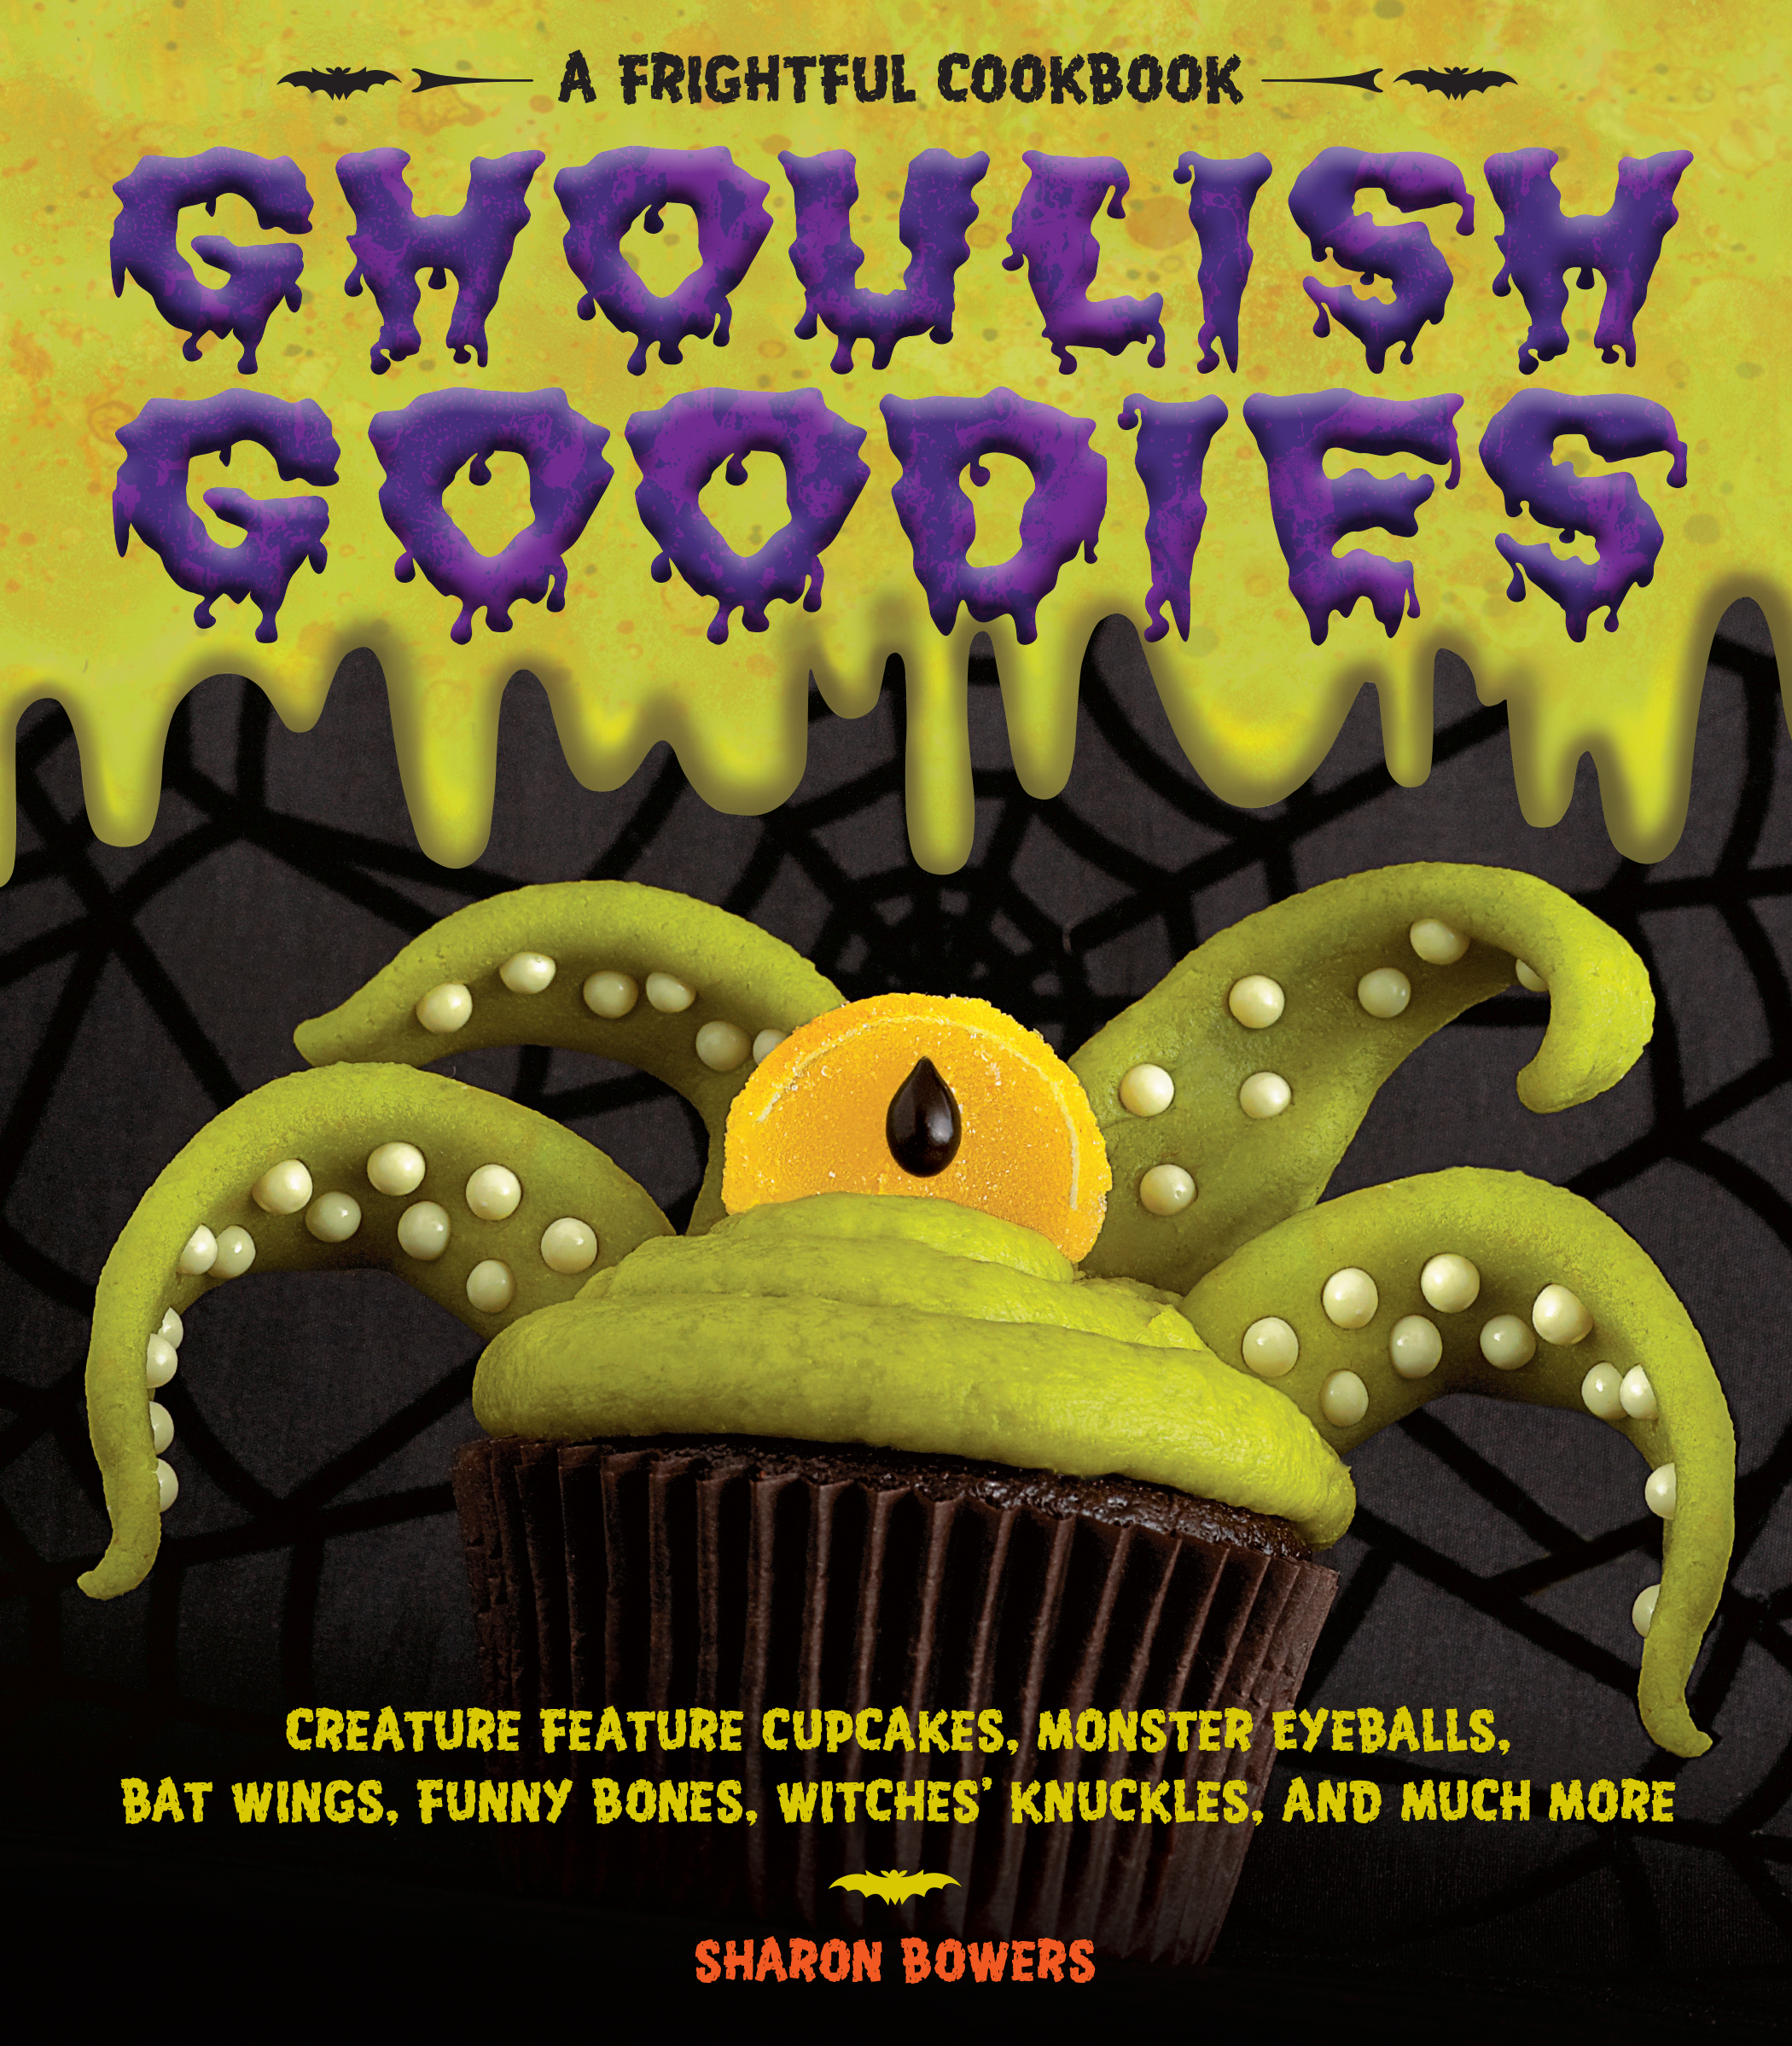 Ghoulish Goodies Creature Feature Cupcakes, Monster Eyeballs, Bat Wings, Funny Bones, Witches' Knuckles, and Much More! - Sharon Bowers